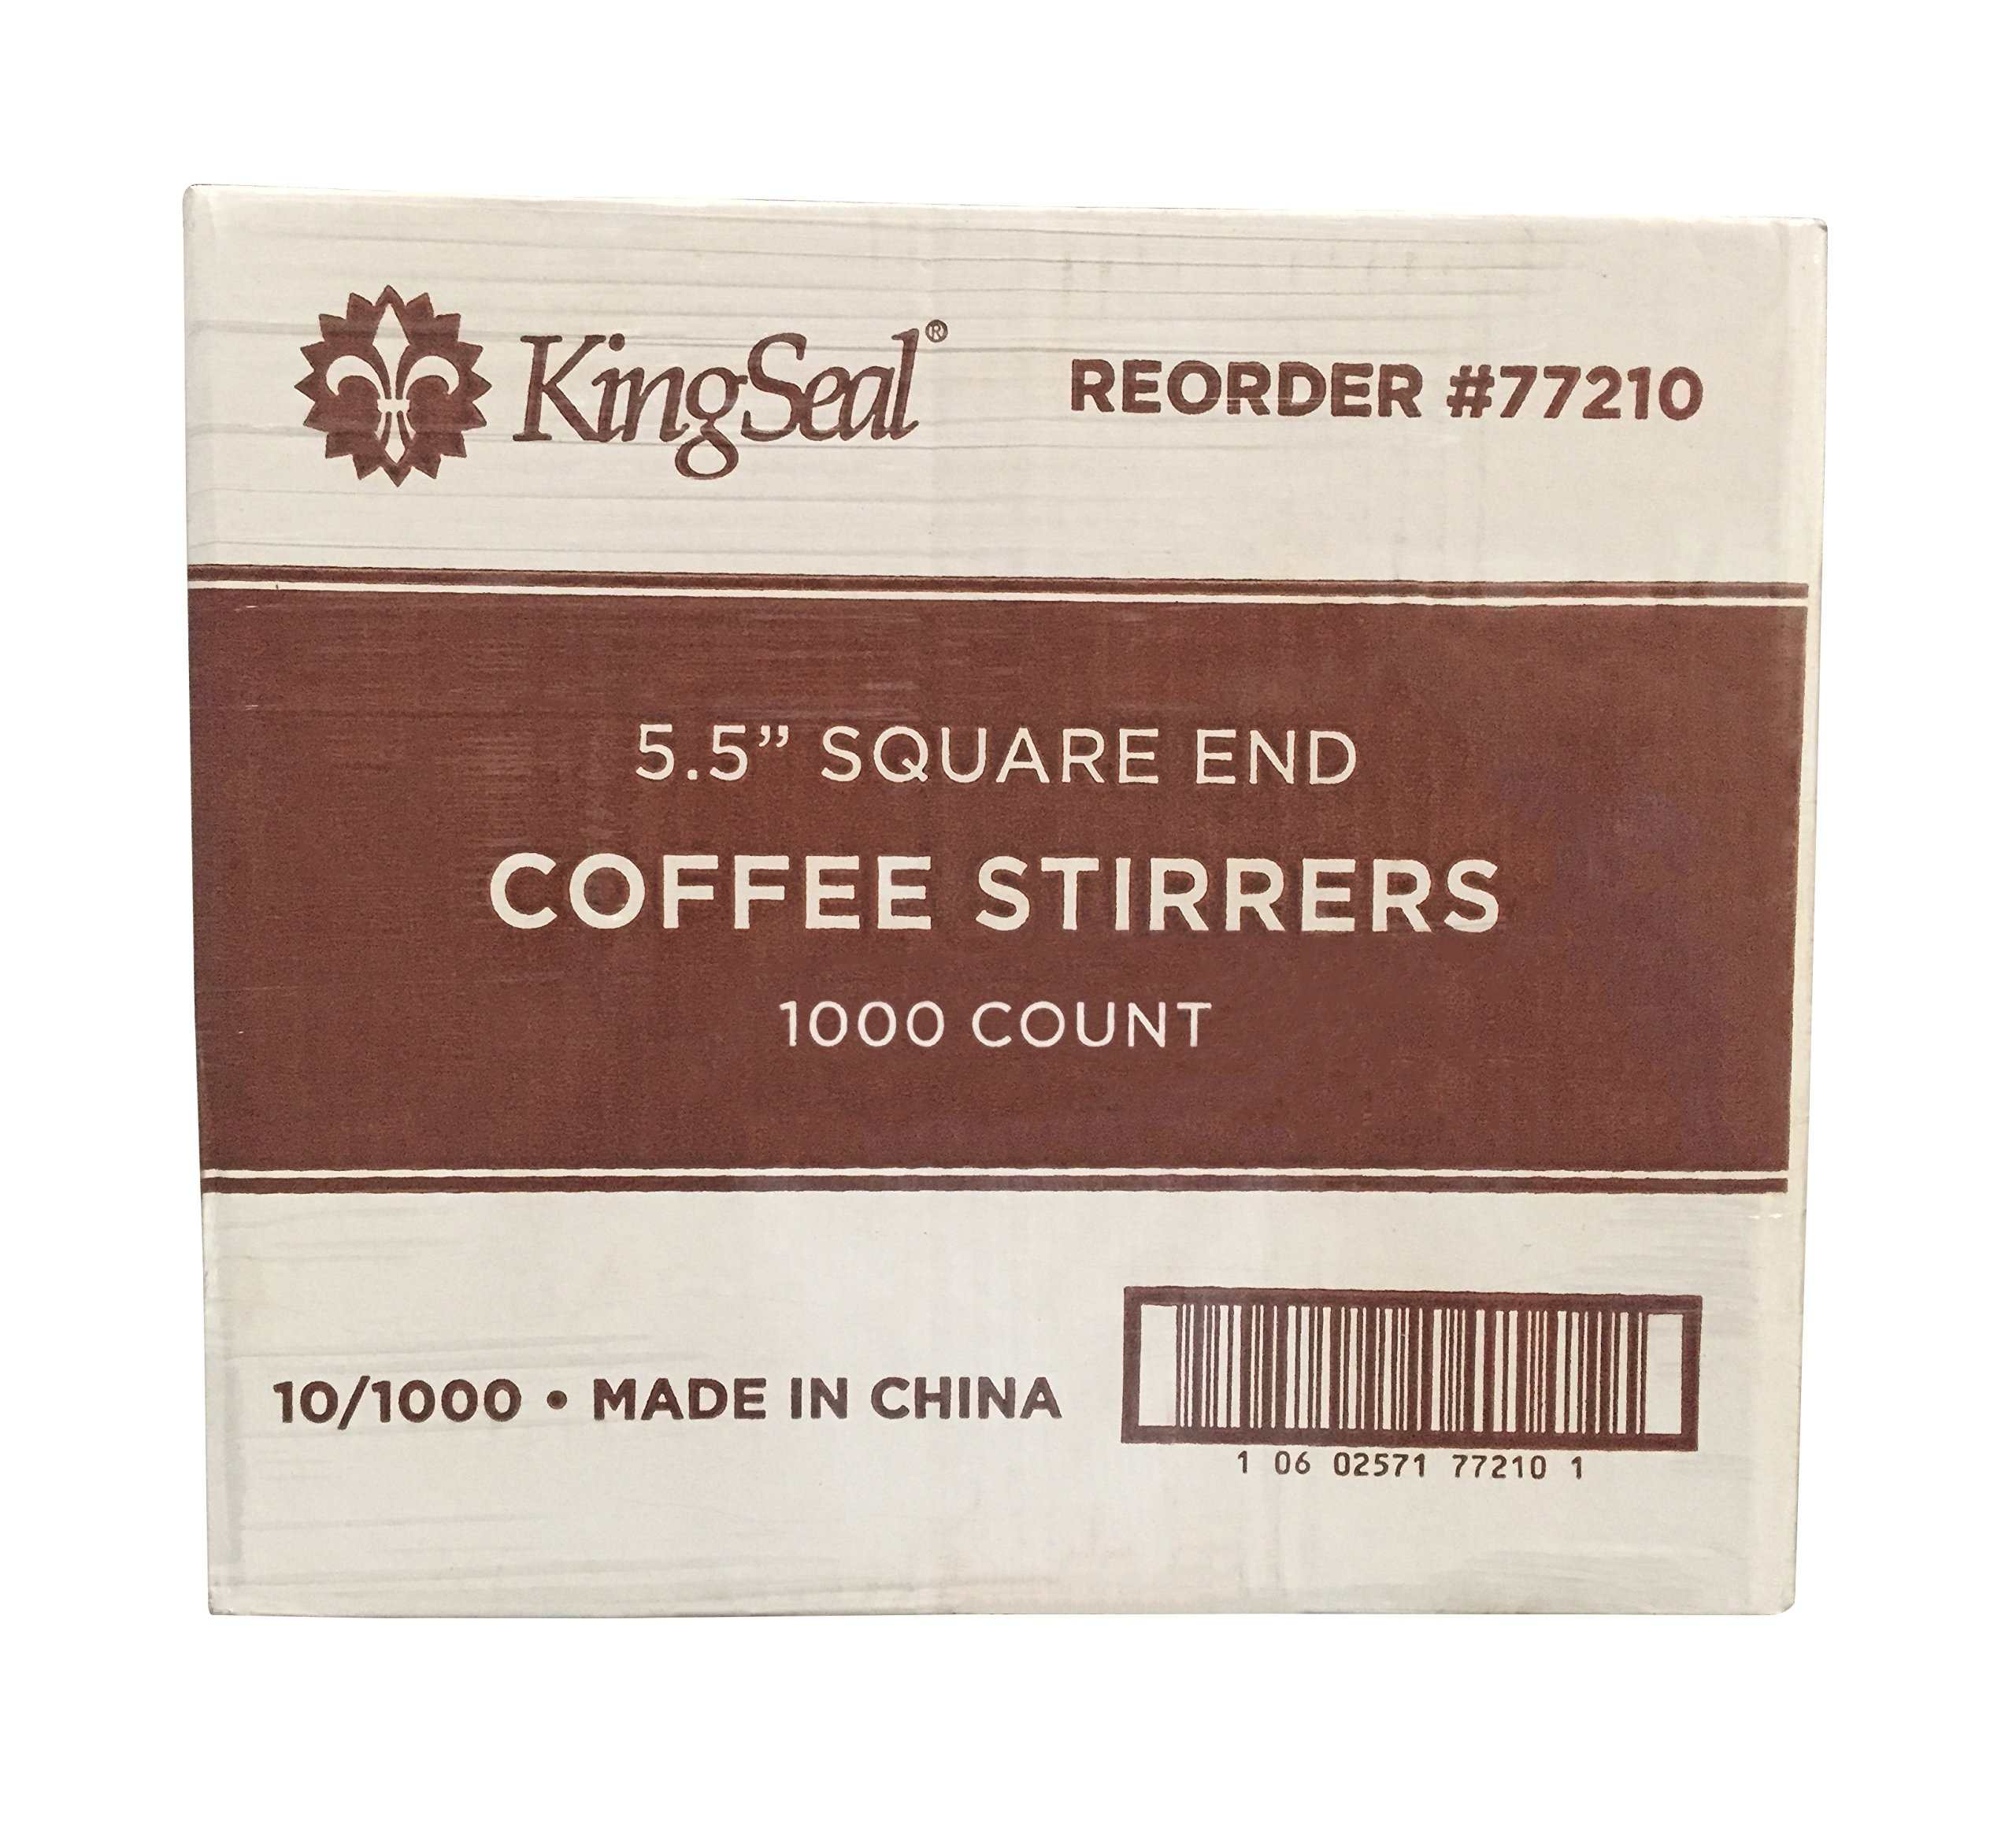 KingSeal Natural Birch Wood Coffee Stirrers, Stir Sticks, 5.5 Inch, Square End - 10 Packs of 1000 per Case (10,000 pcs total) by KingSeal (Image #5)